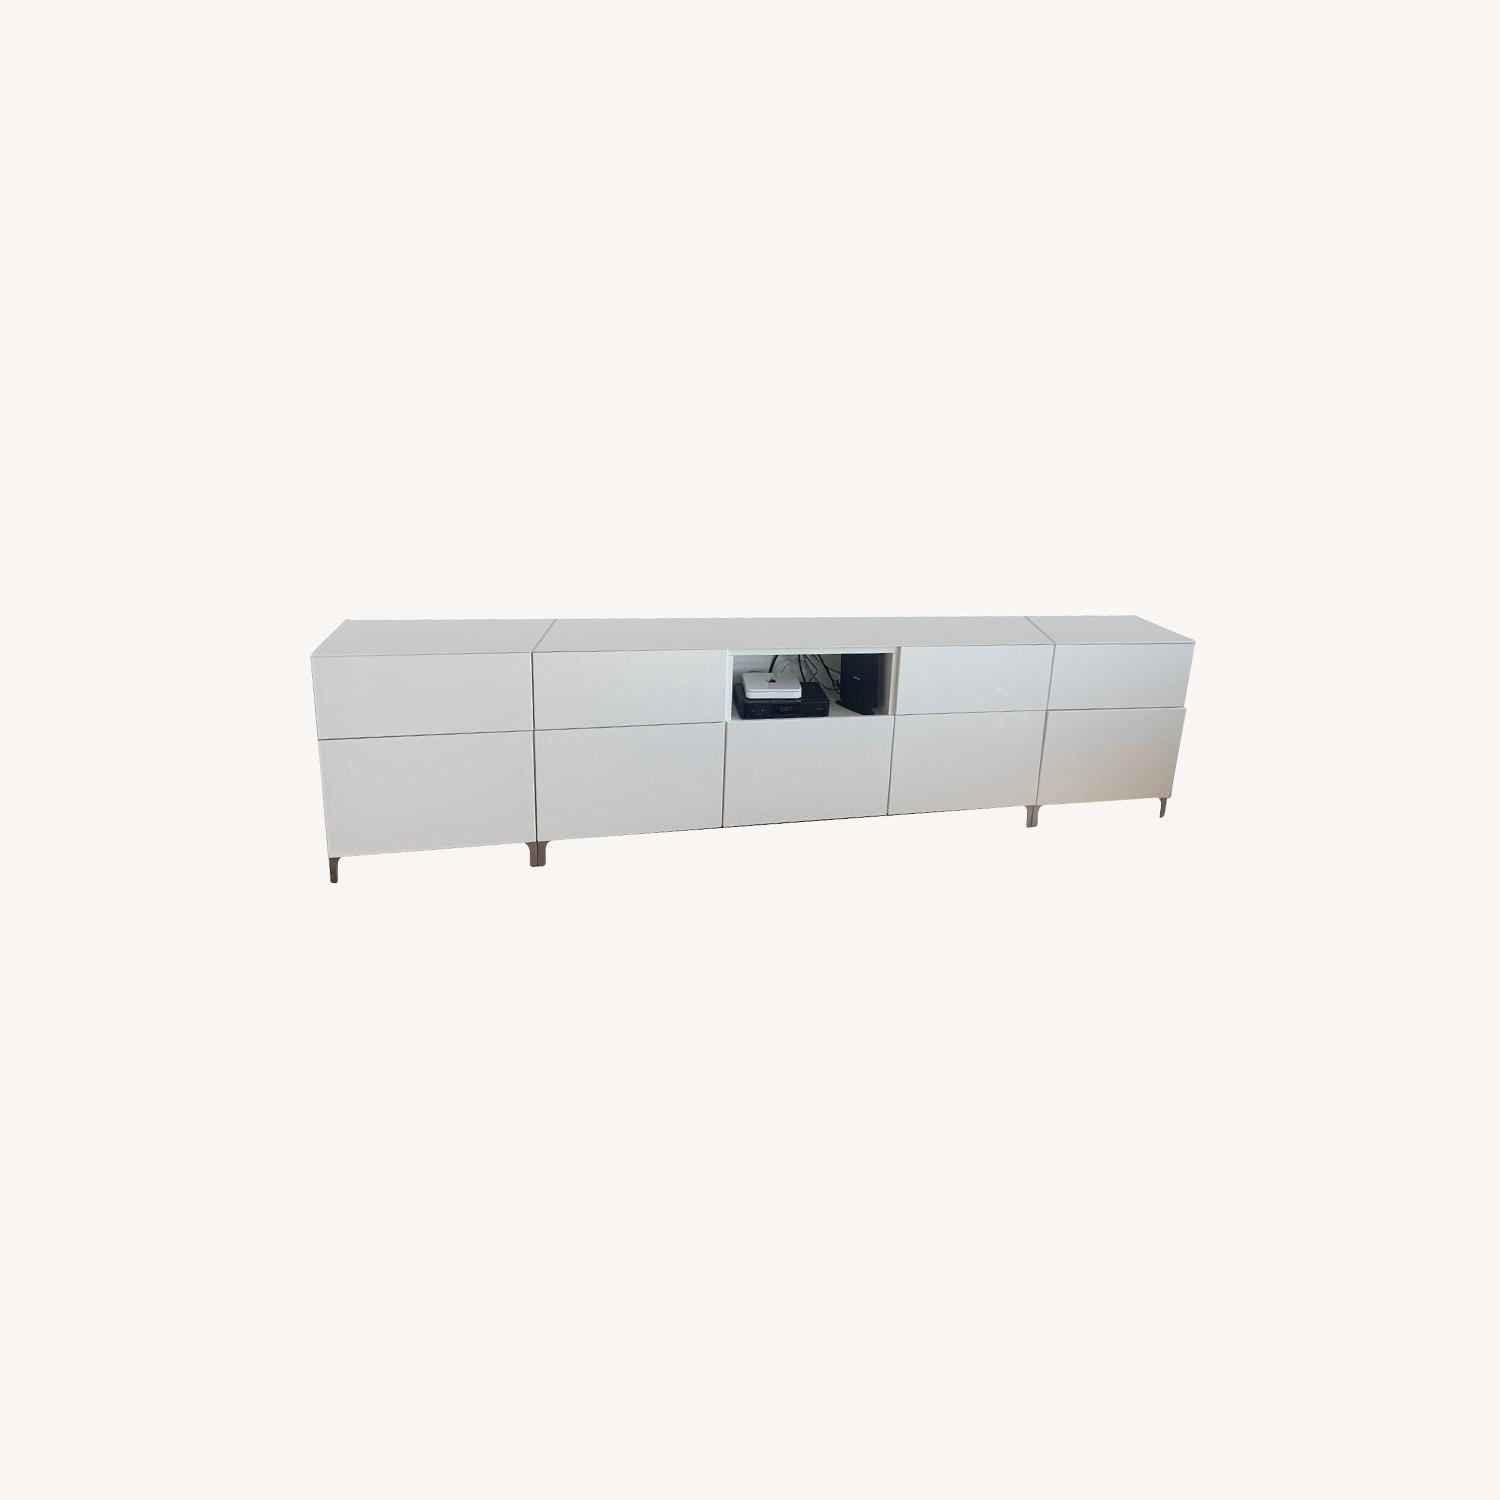 IKEA 9 Drawer White Lacquered Credenza - image-0